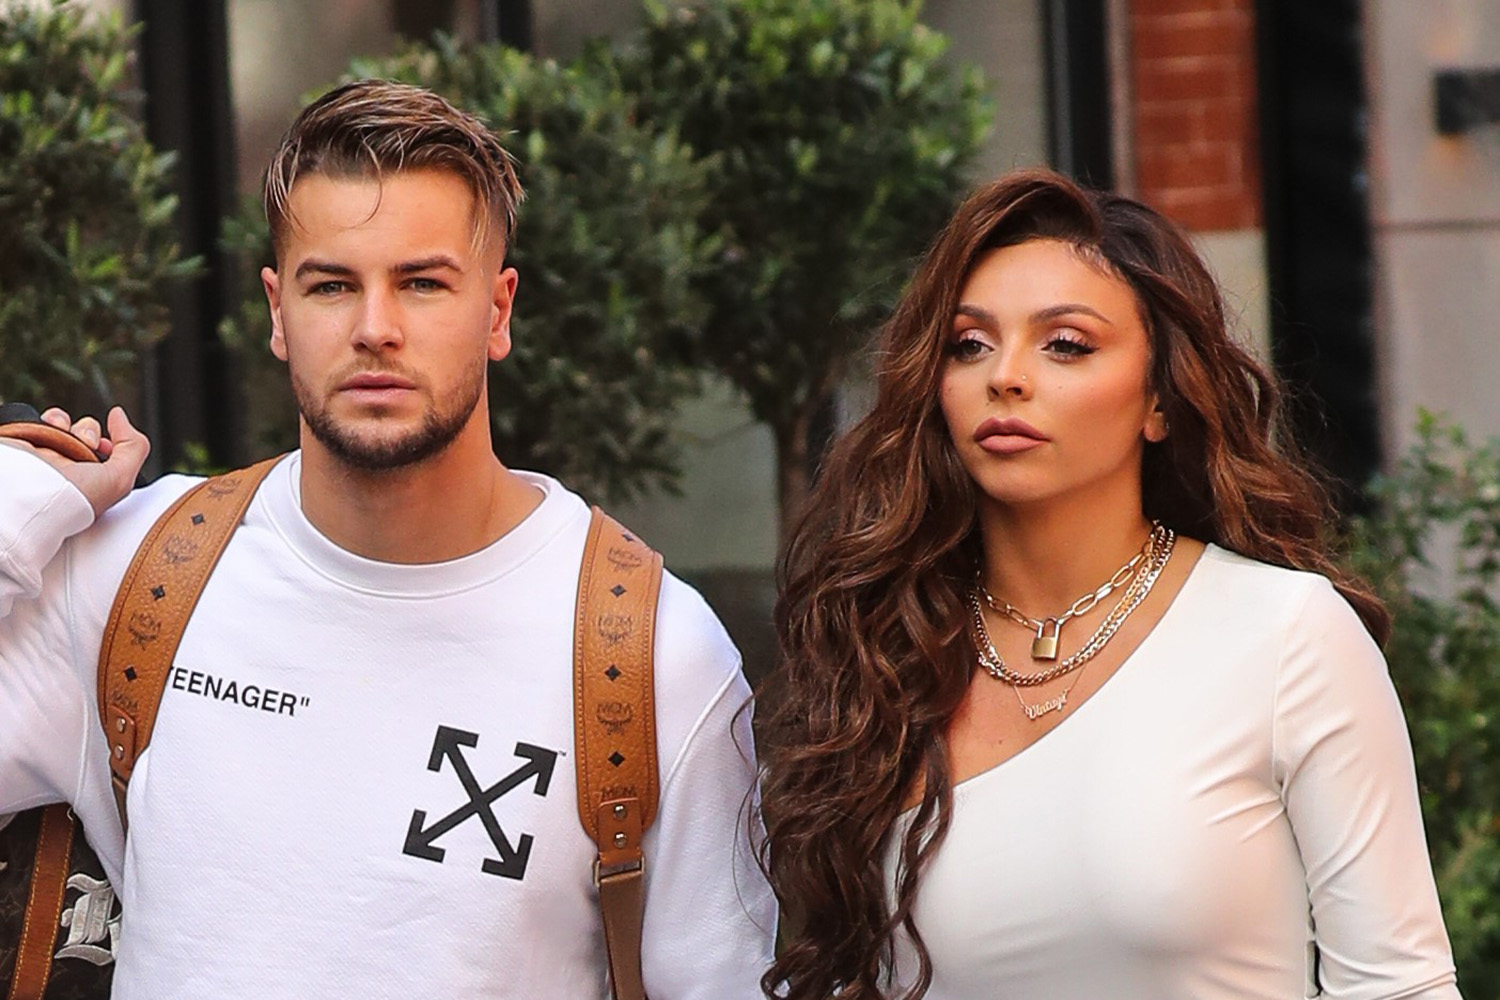 Chris Hughes steps in to defend ex Jesy Nelson against Katie Hopkins